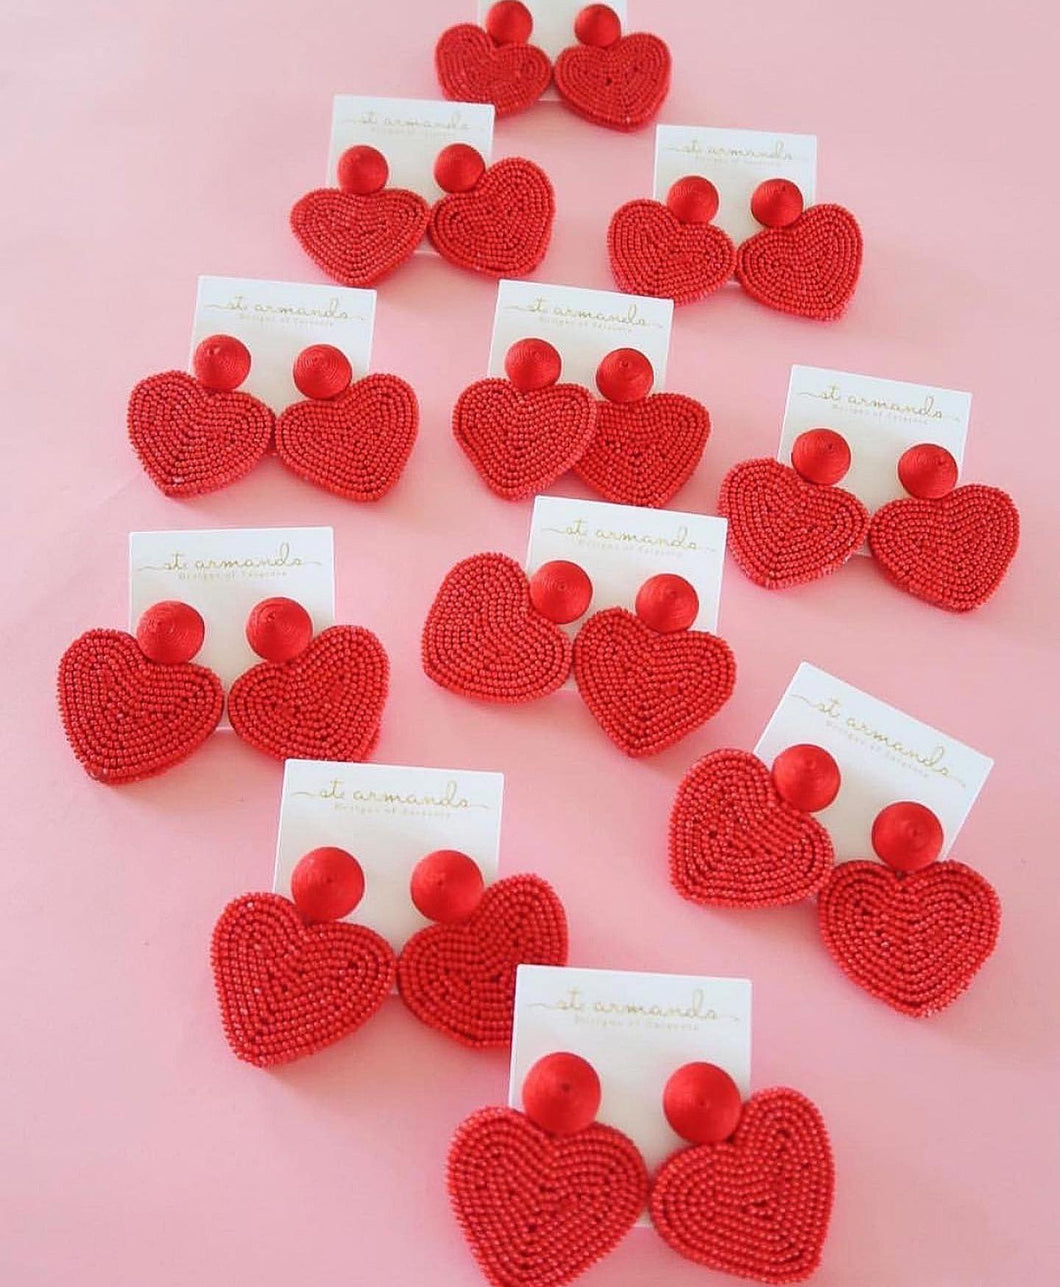 Red Hearts | St. Armands Designs